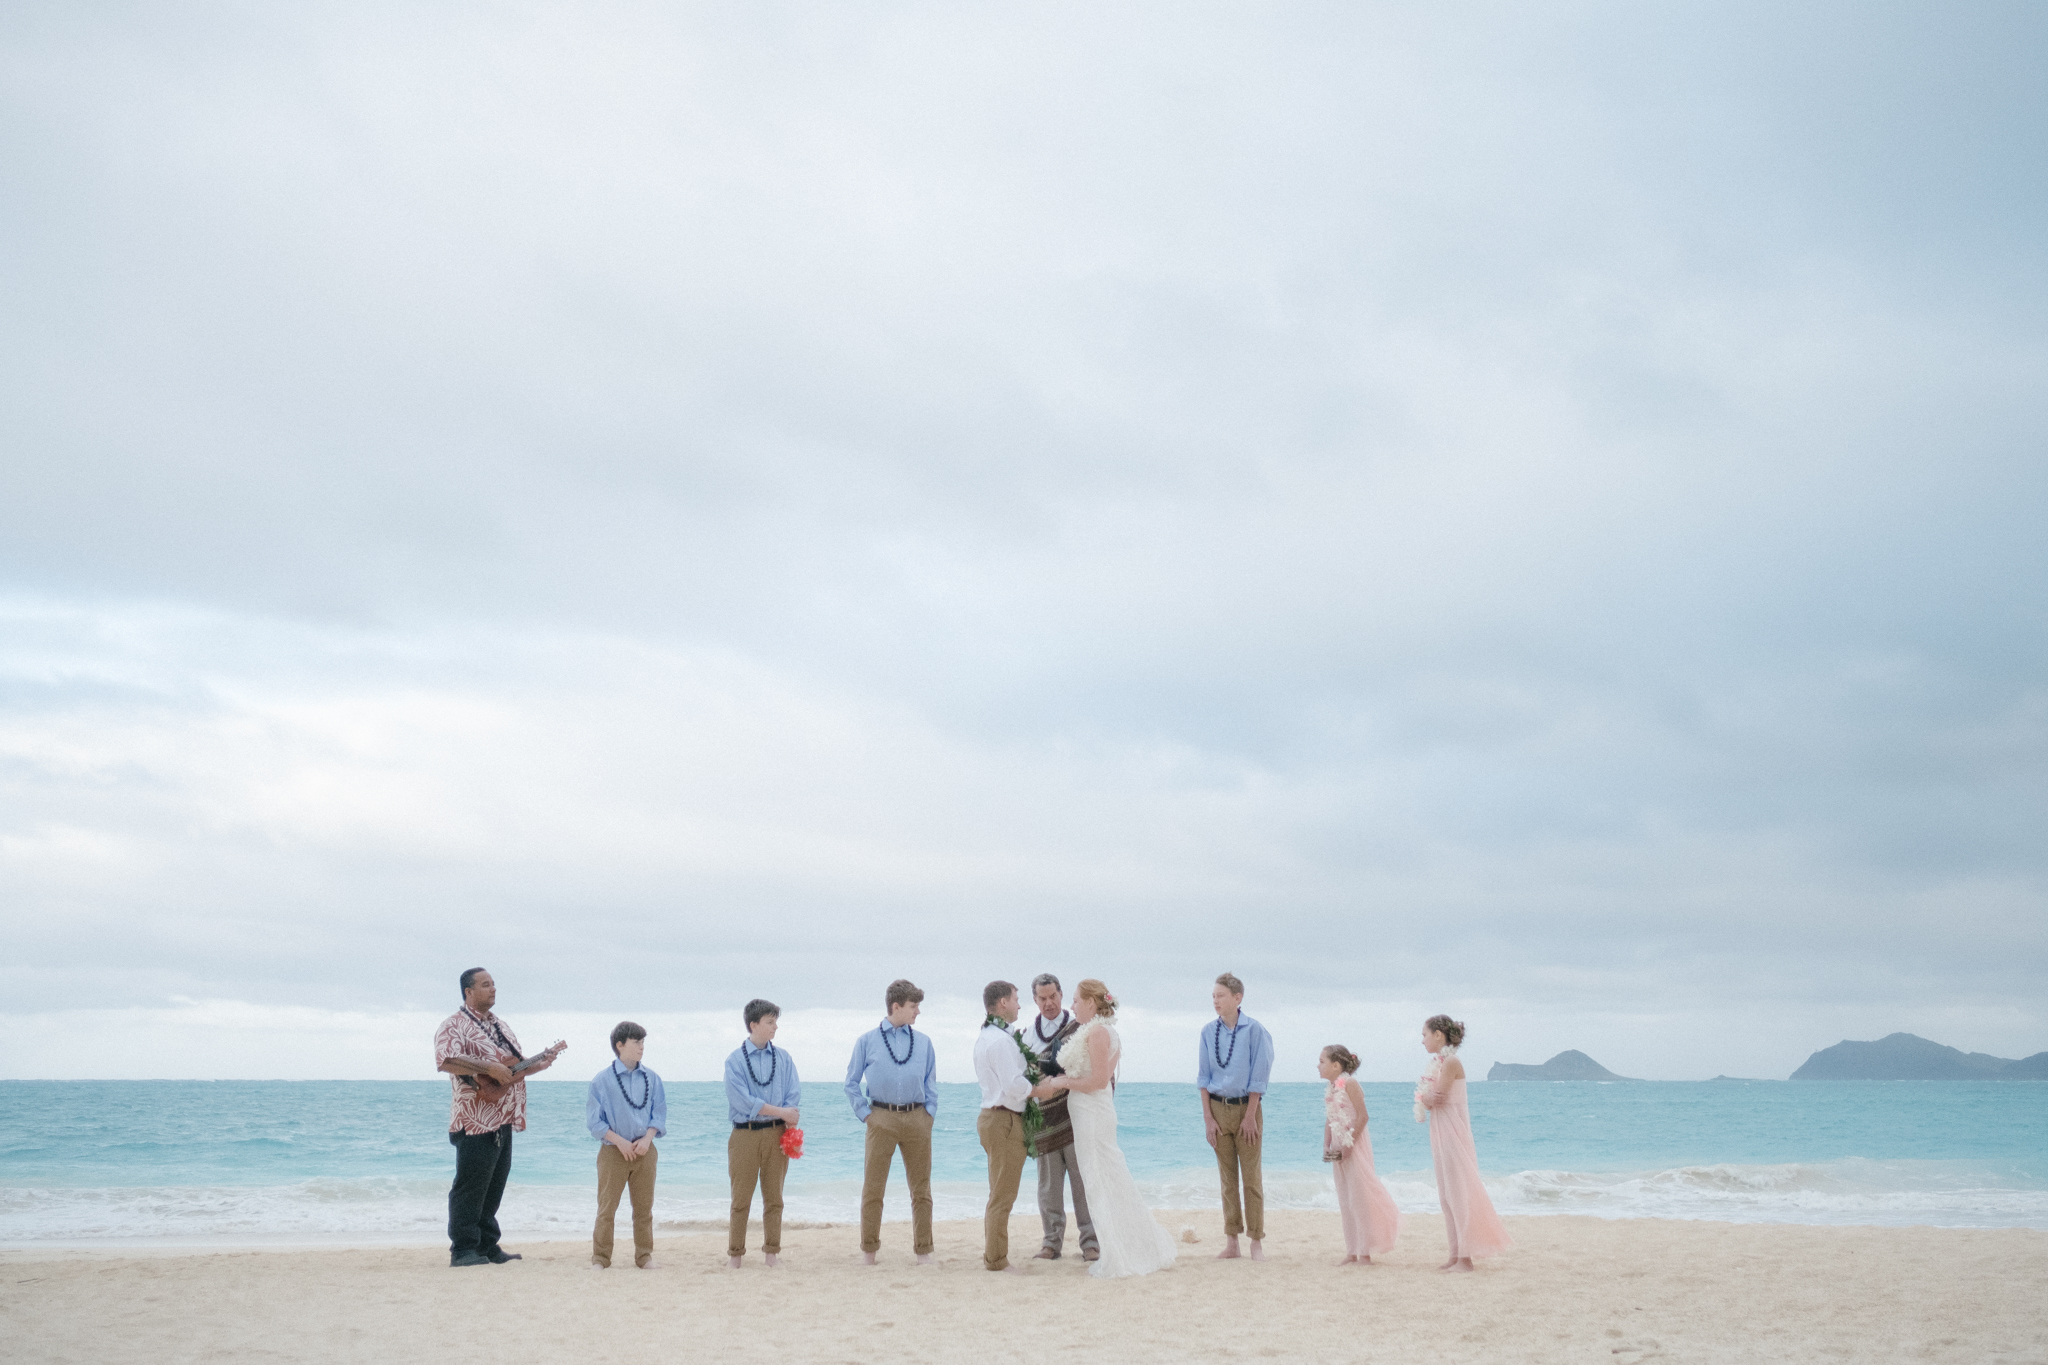 waimanalo_beach_wedding_photographer-15.jpg